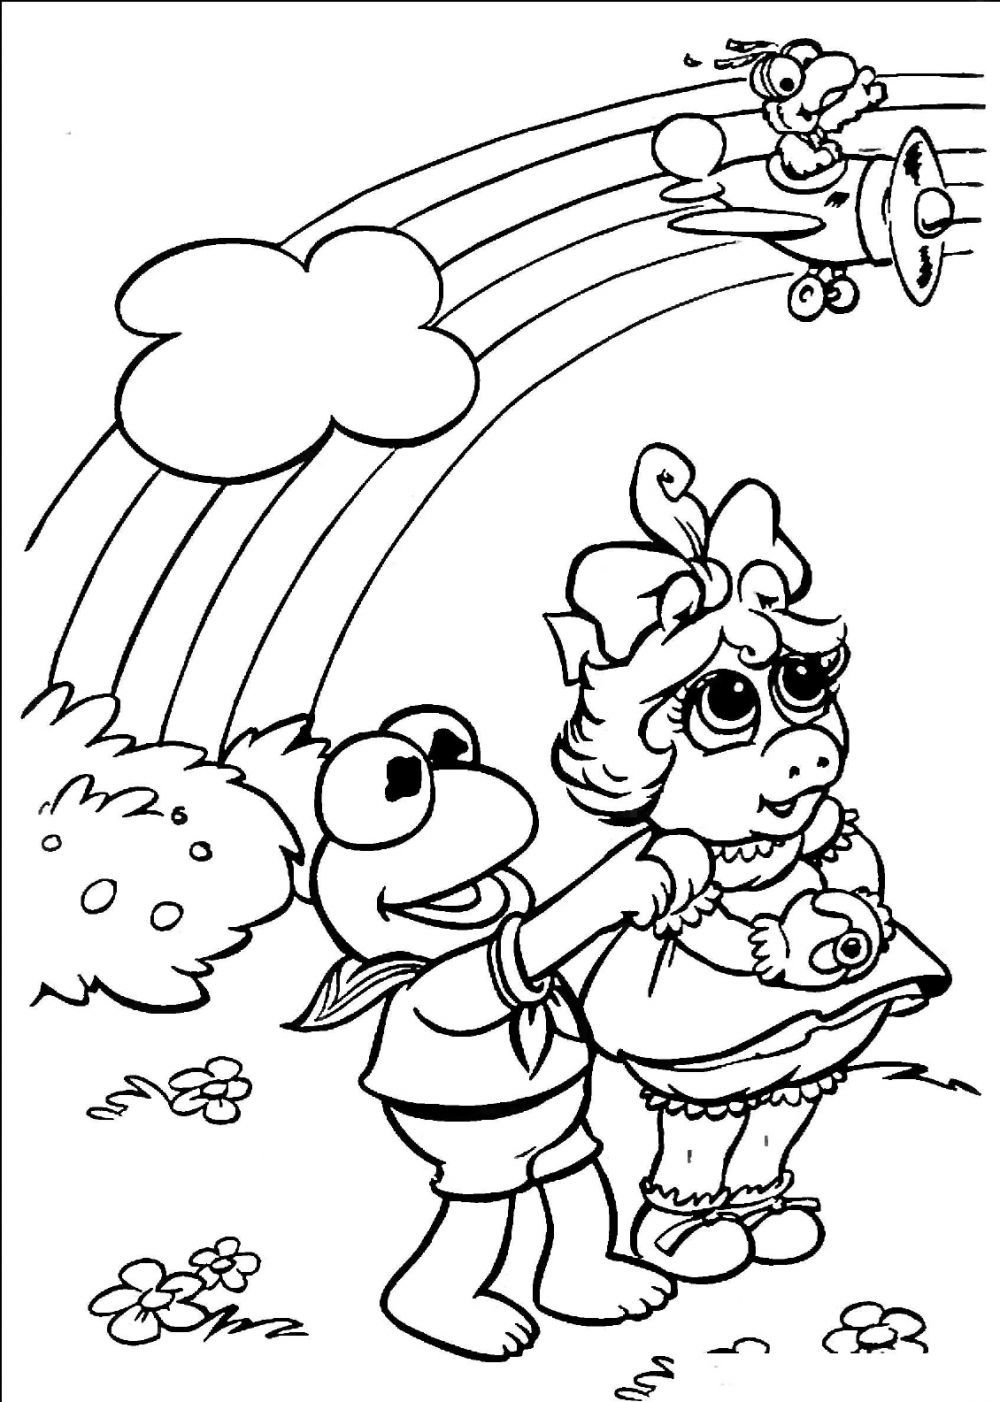 Muppet Babies Coloring Pages Coloring Pages Coloring Pages